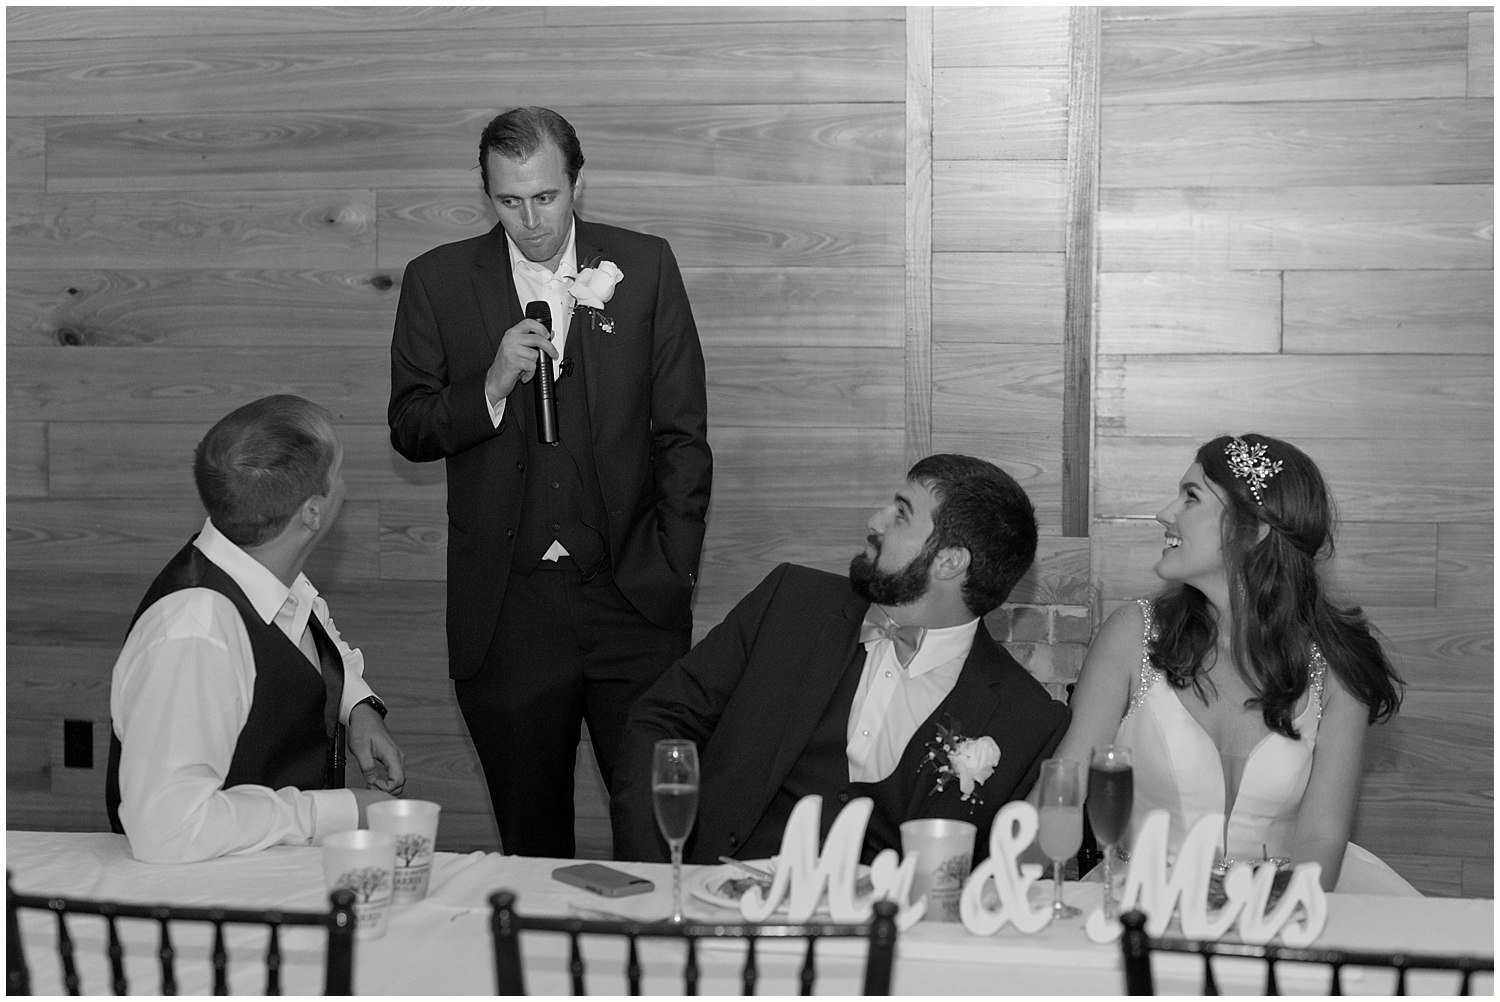 groomsman speech at wedding reception